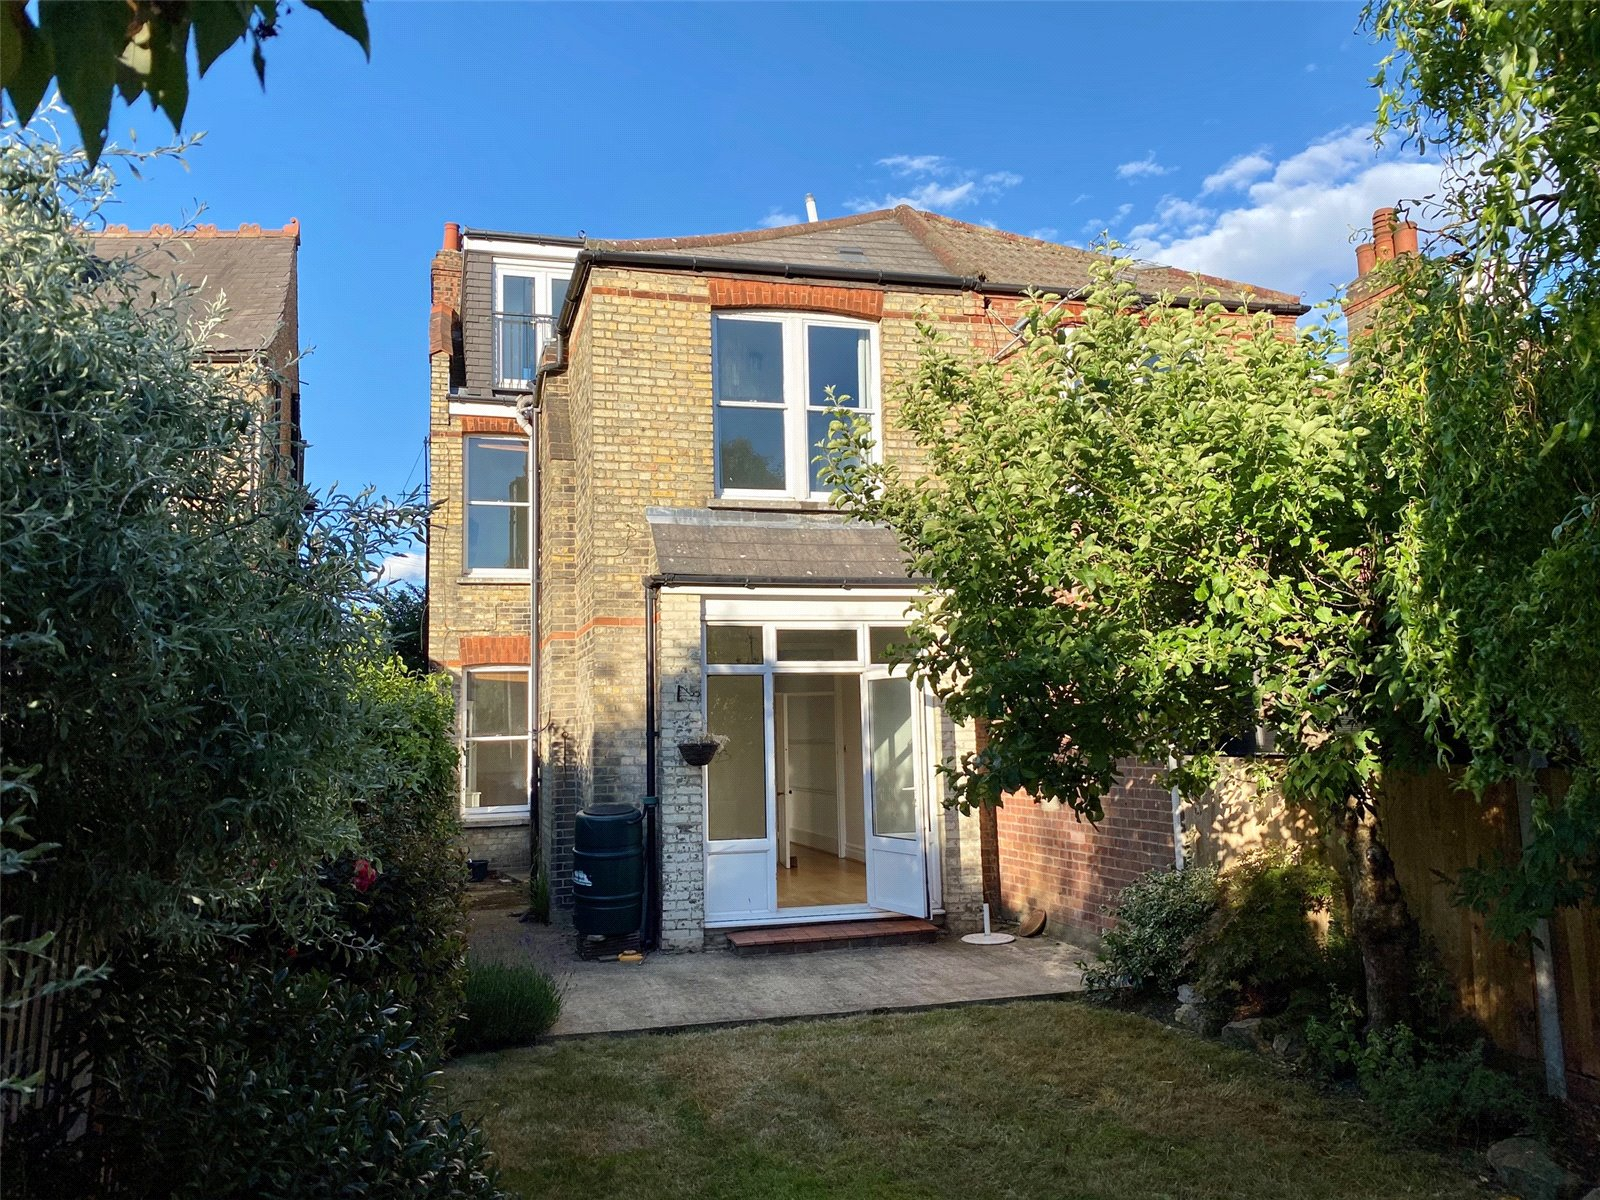 4 bed house for sale in Finchley, N3 2AR 11